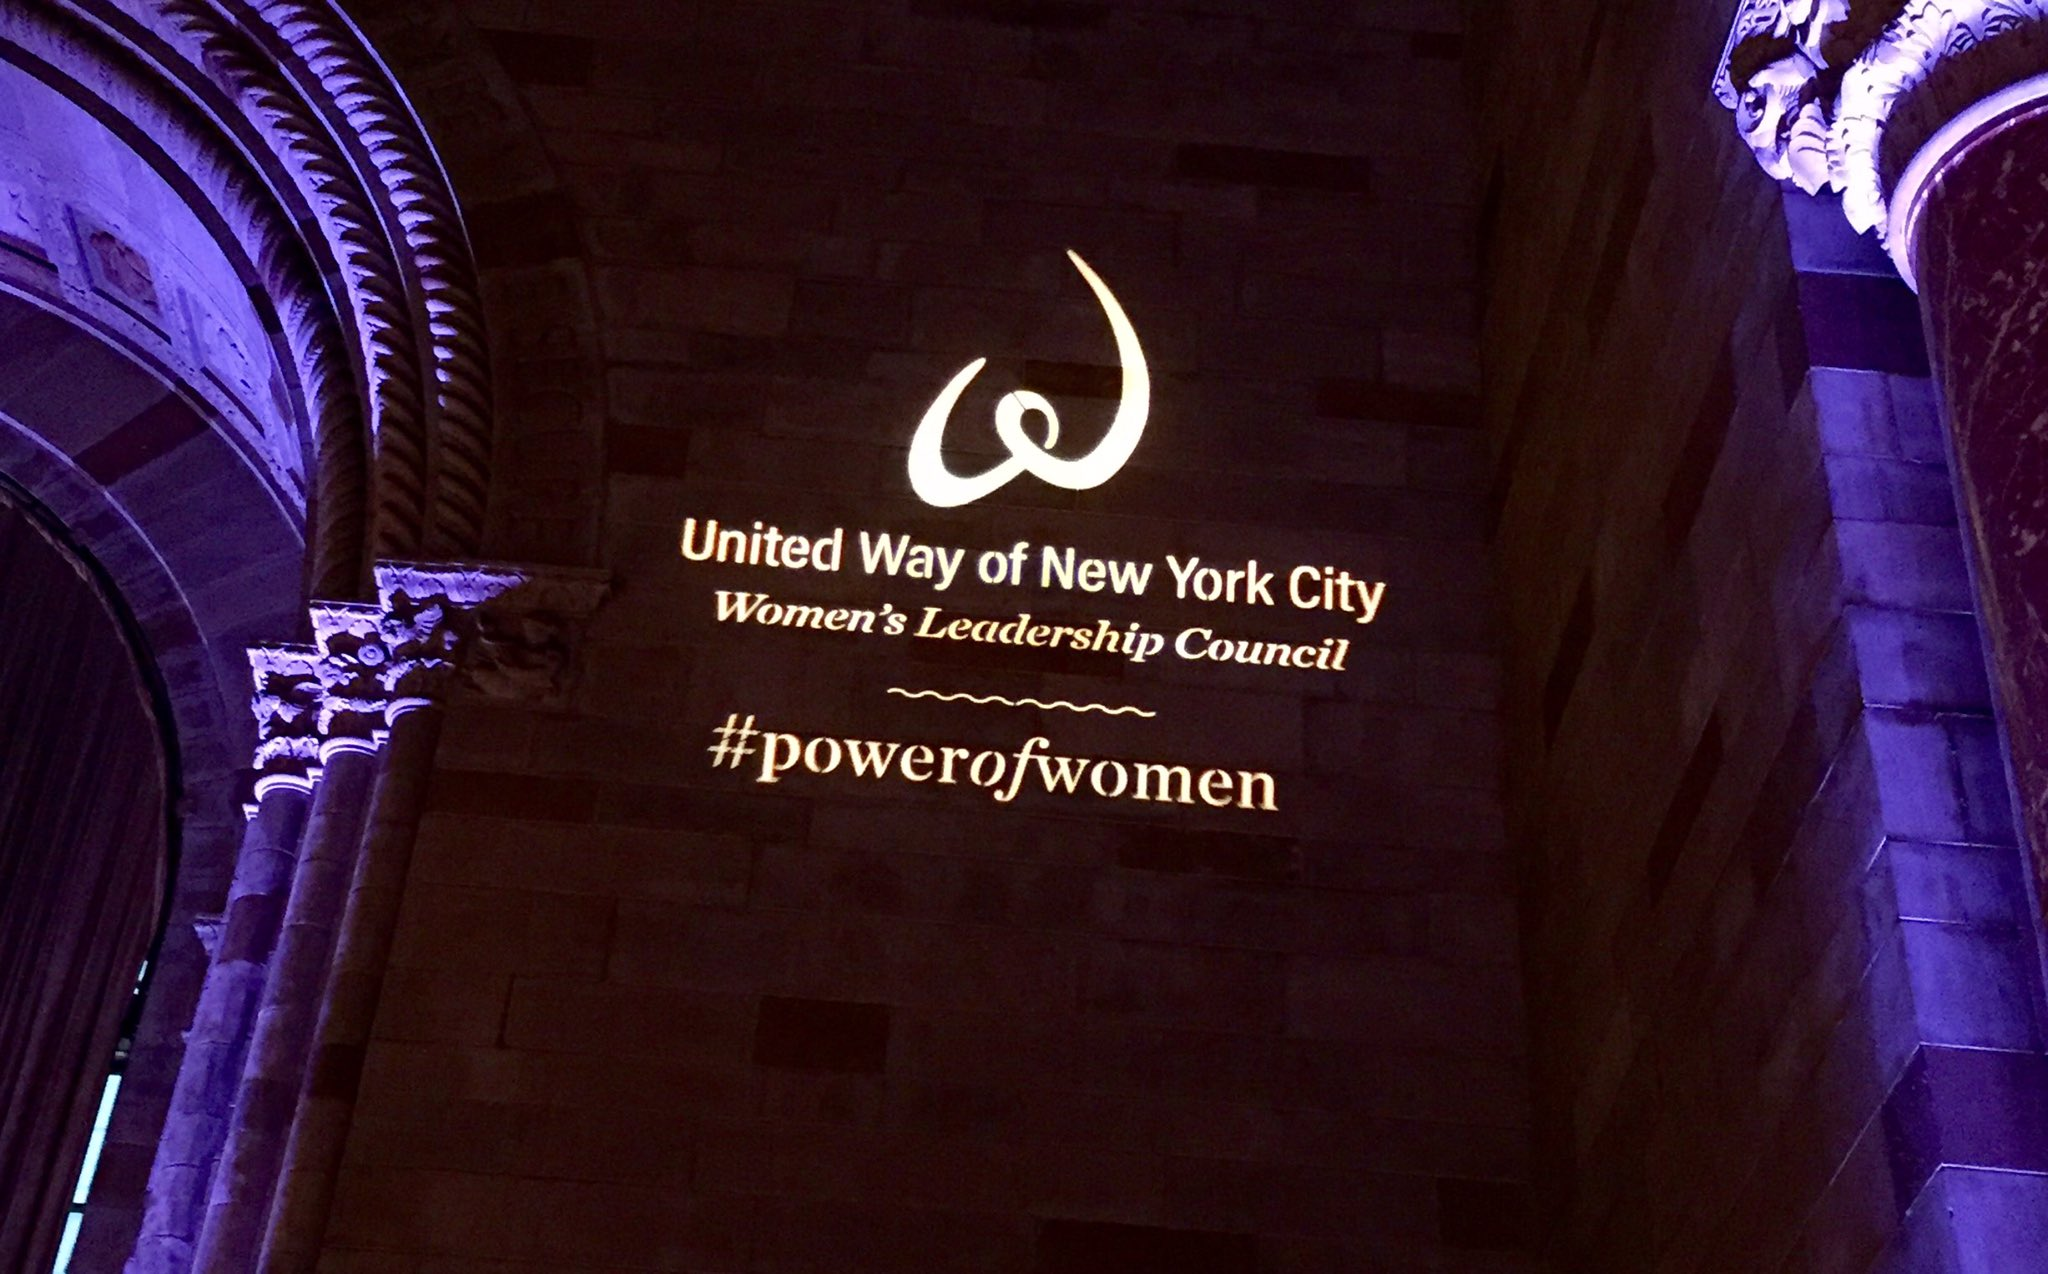 As #InternationalWomensDay & #DayWithoutAWoman activate ppl across the world, we're thrilled to bring the #PowerofWomen 2gether for #impact! https://t.co/EM0GWCVLX1